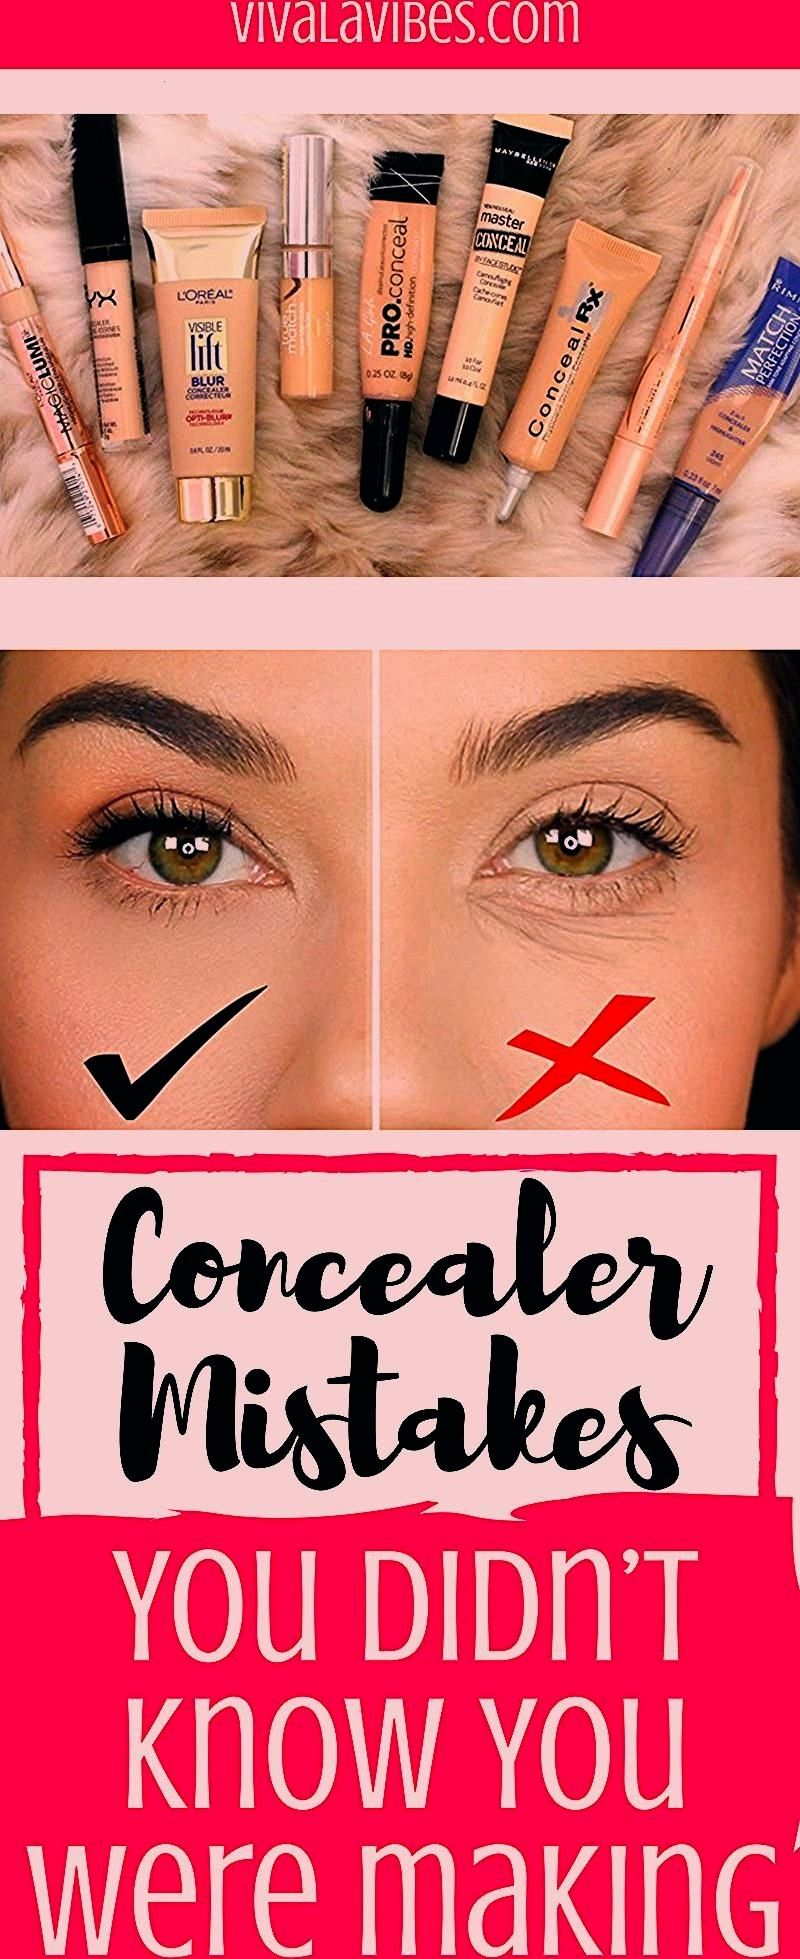 up on your tips and tutorials. Whether you have acne, oily skin, dark circles under eye, weve got